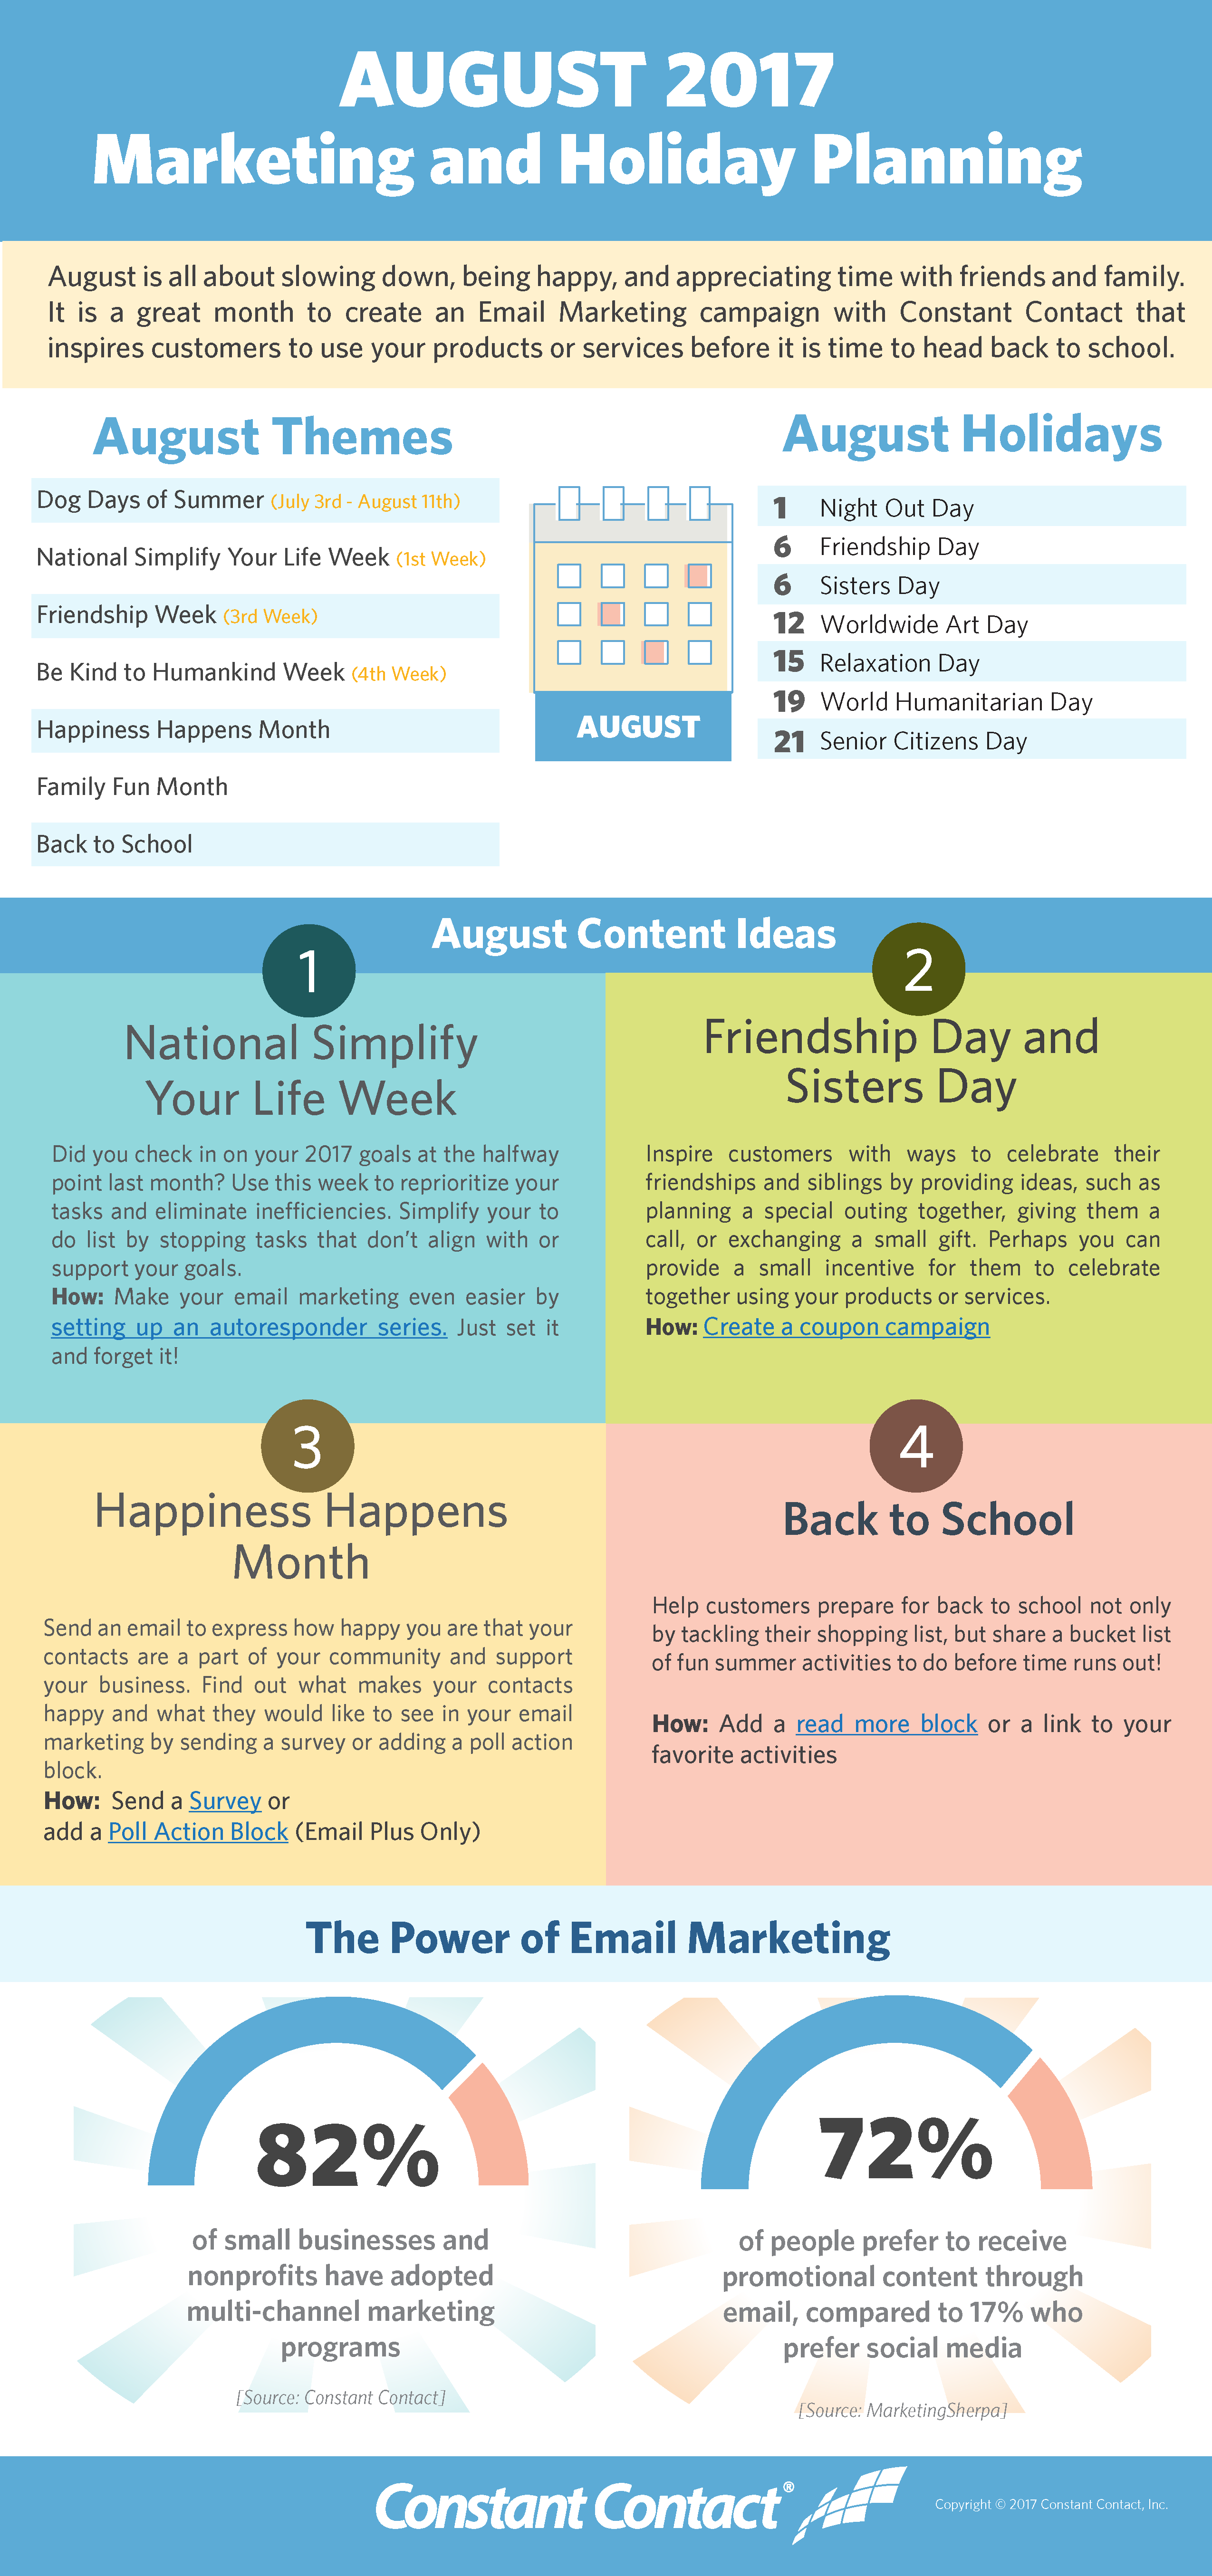 august 2017 marketing and holiday planning   constant contact blogs